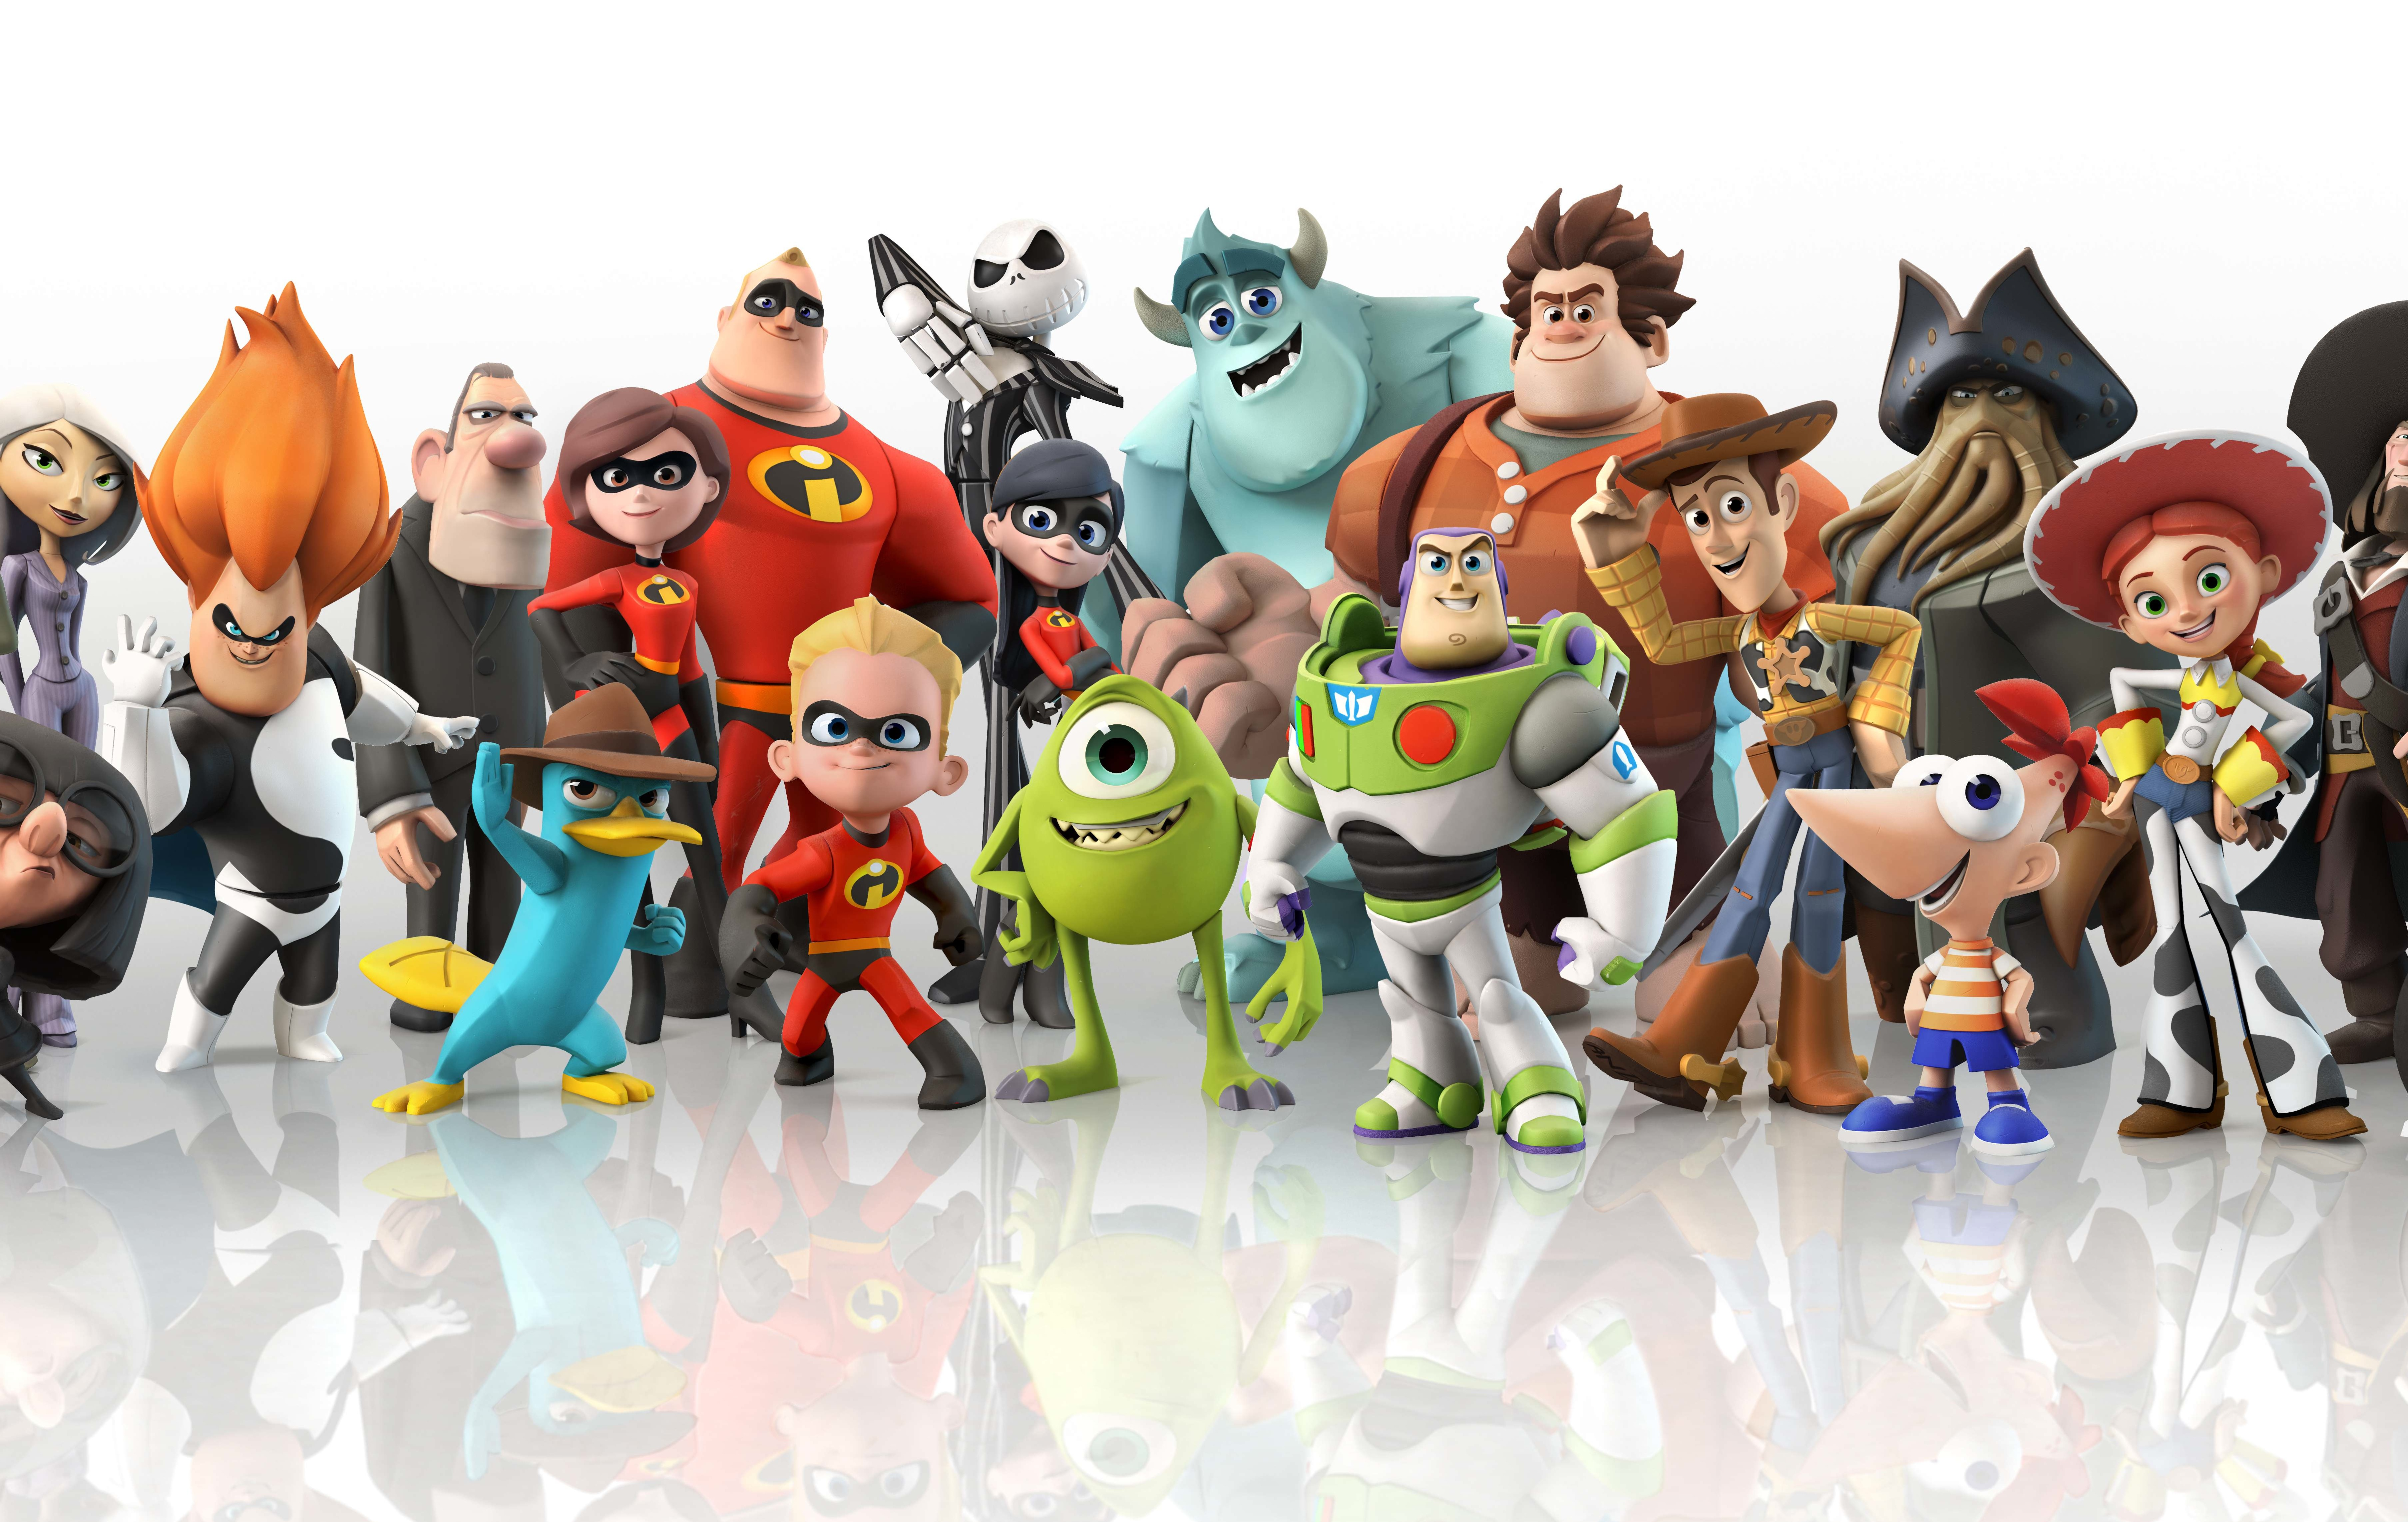 Disney Infinity Launches for Xbox, PS3, Wii - Peter Kafka - Media - AllThingsD